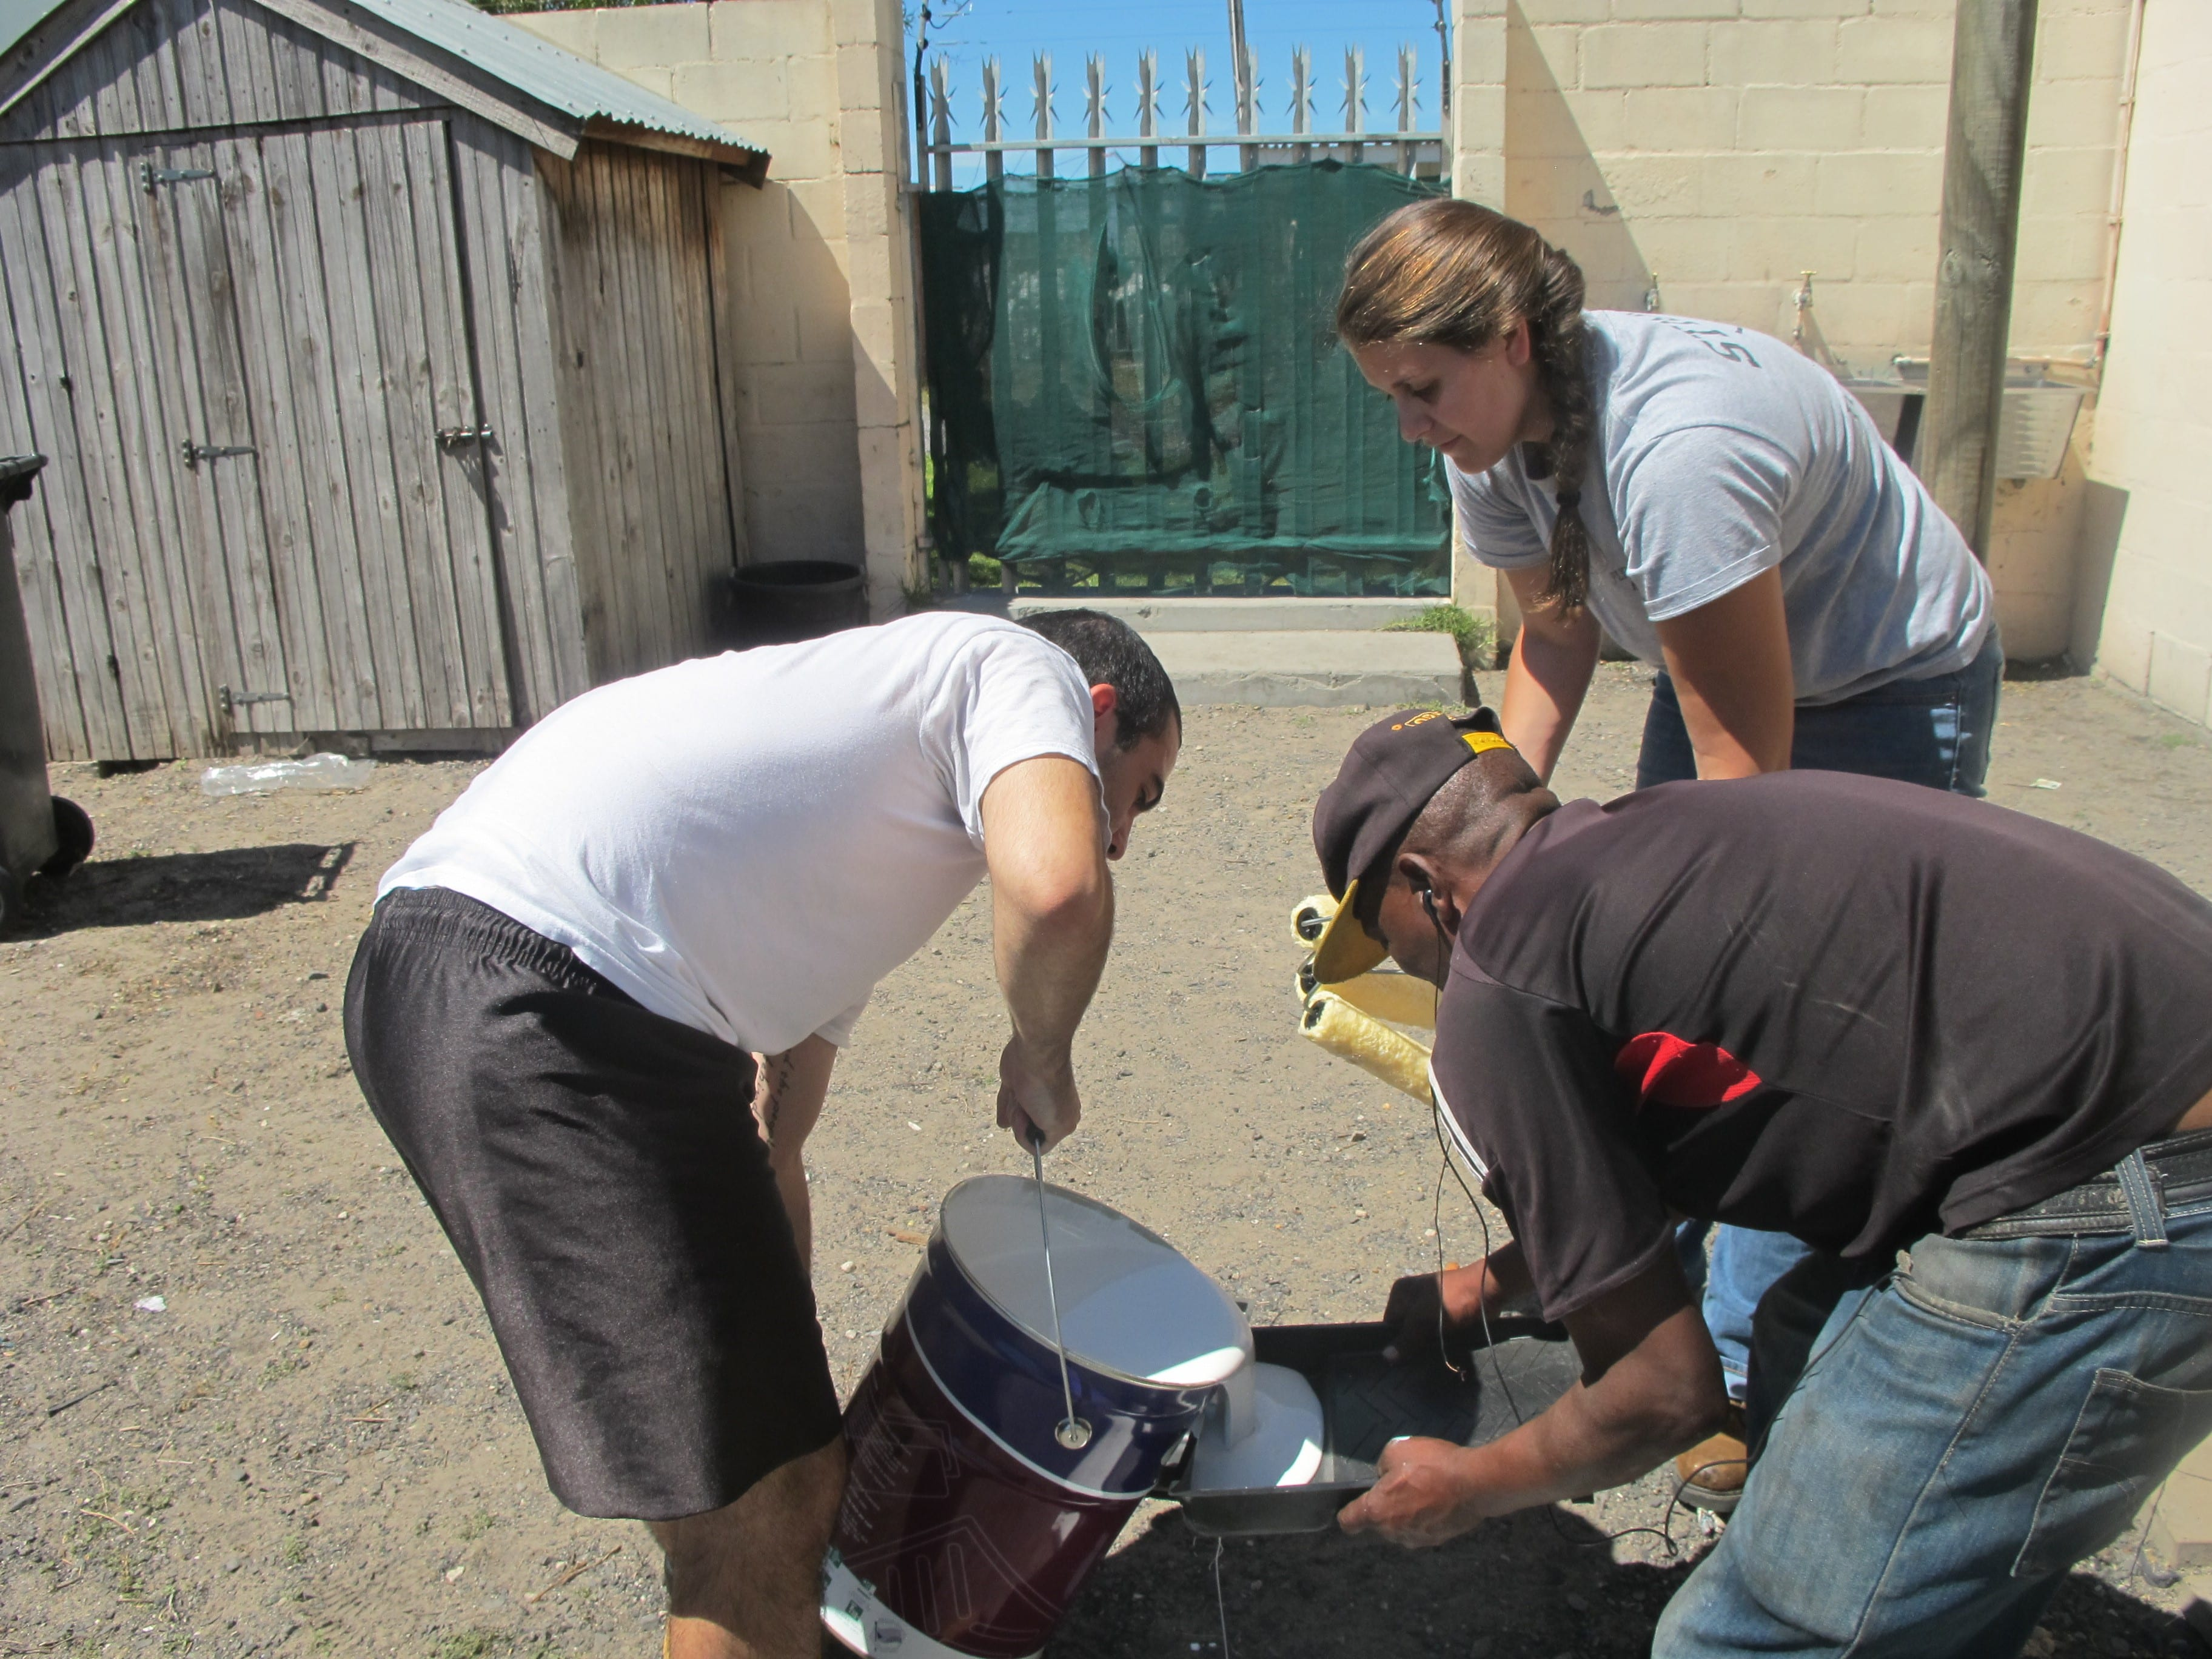 Chrissy, Jon, and Golden work together to keep the paint trays filled so painting can continue